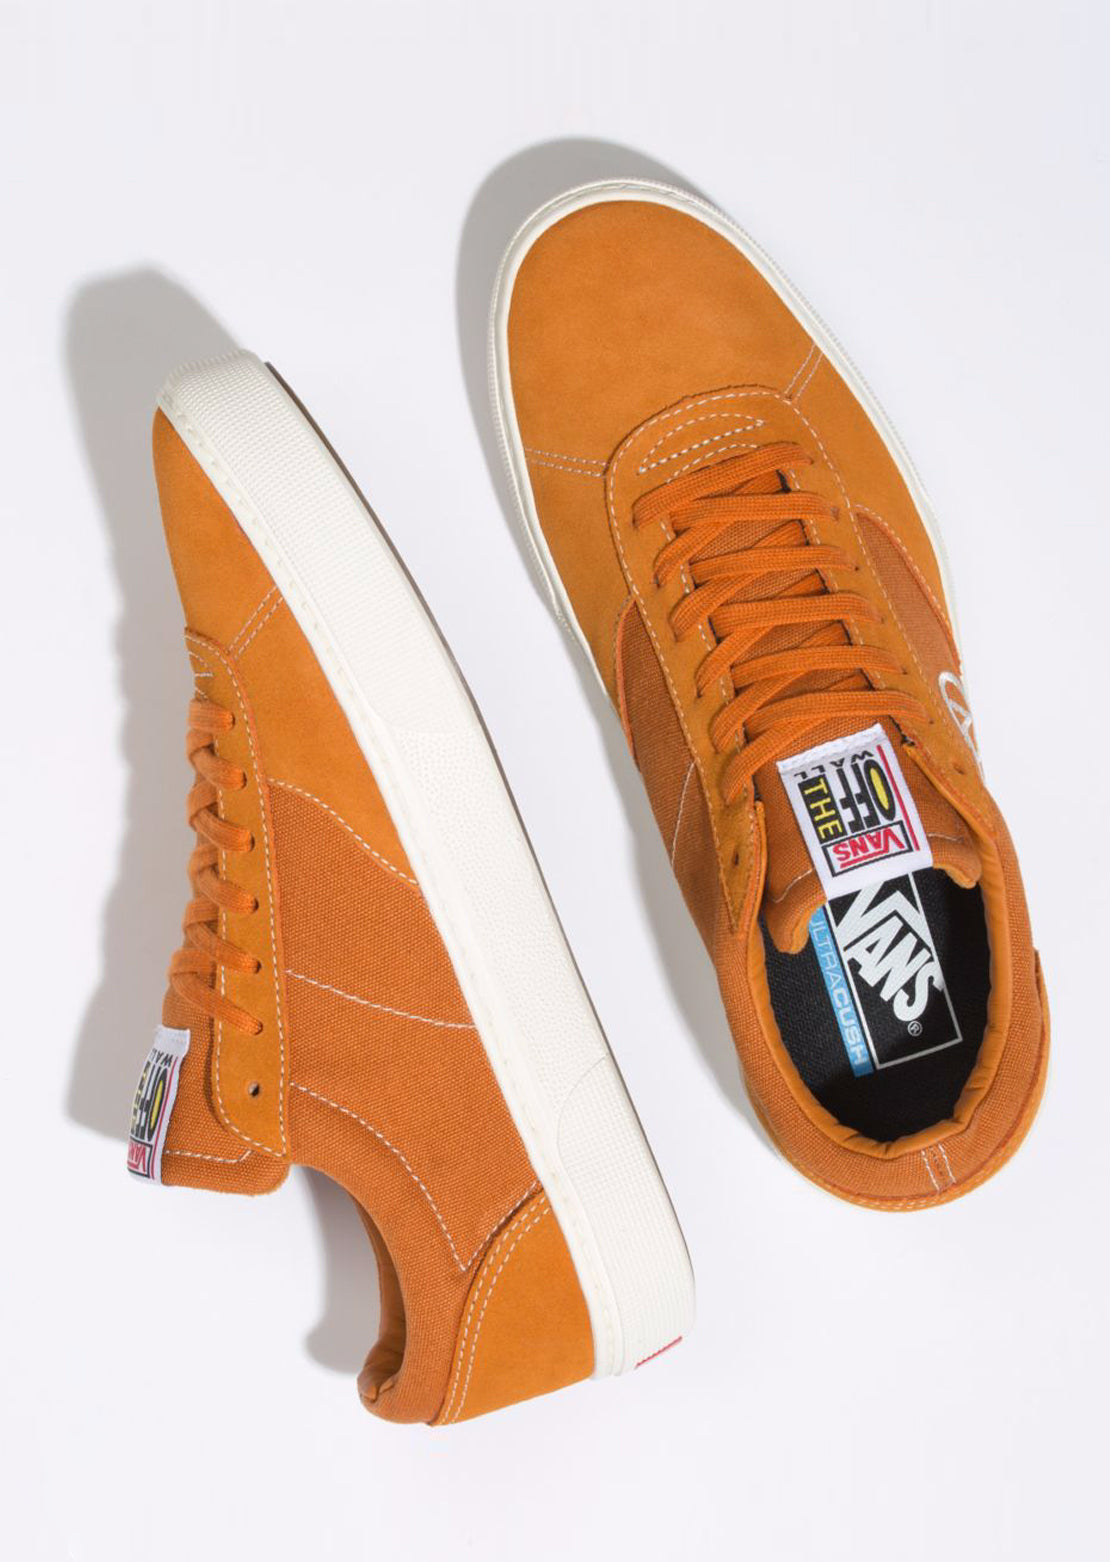 Vans Men's Paradoxxx Shoes Golden Oak/Marshmallow